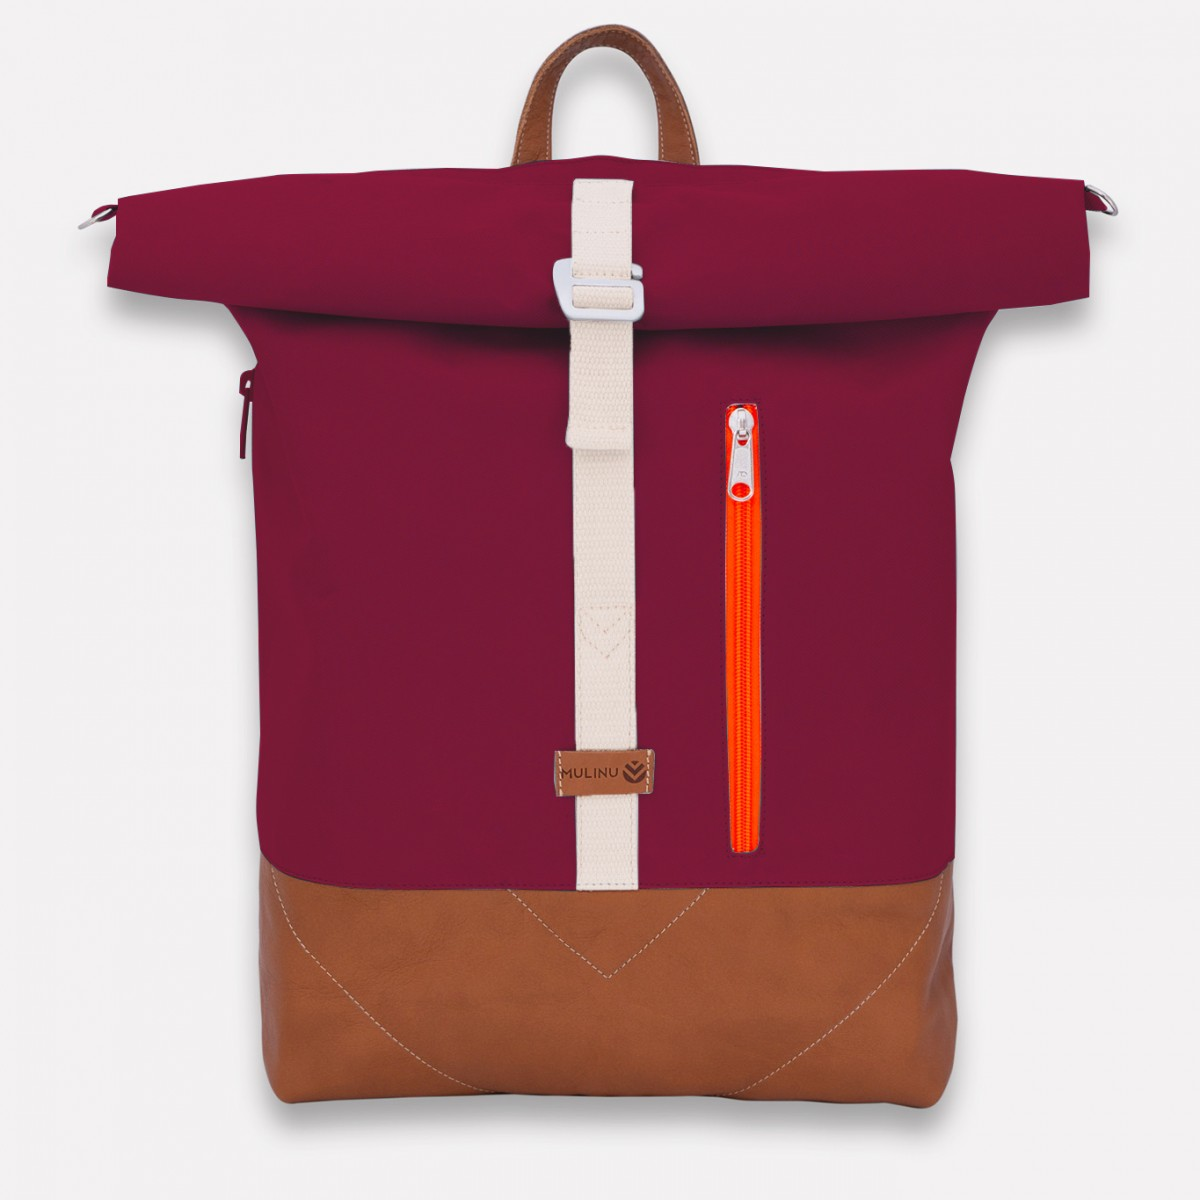 MULINU – Erweiterterbarer Rucksack UNIQUE ALBERT 2 Bordeaux Cognac Leder Neon Orange